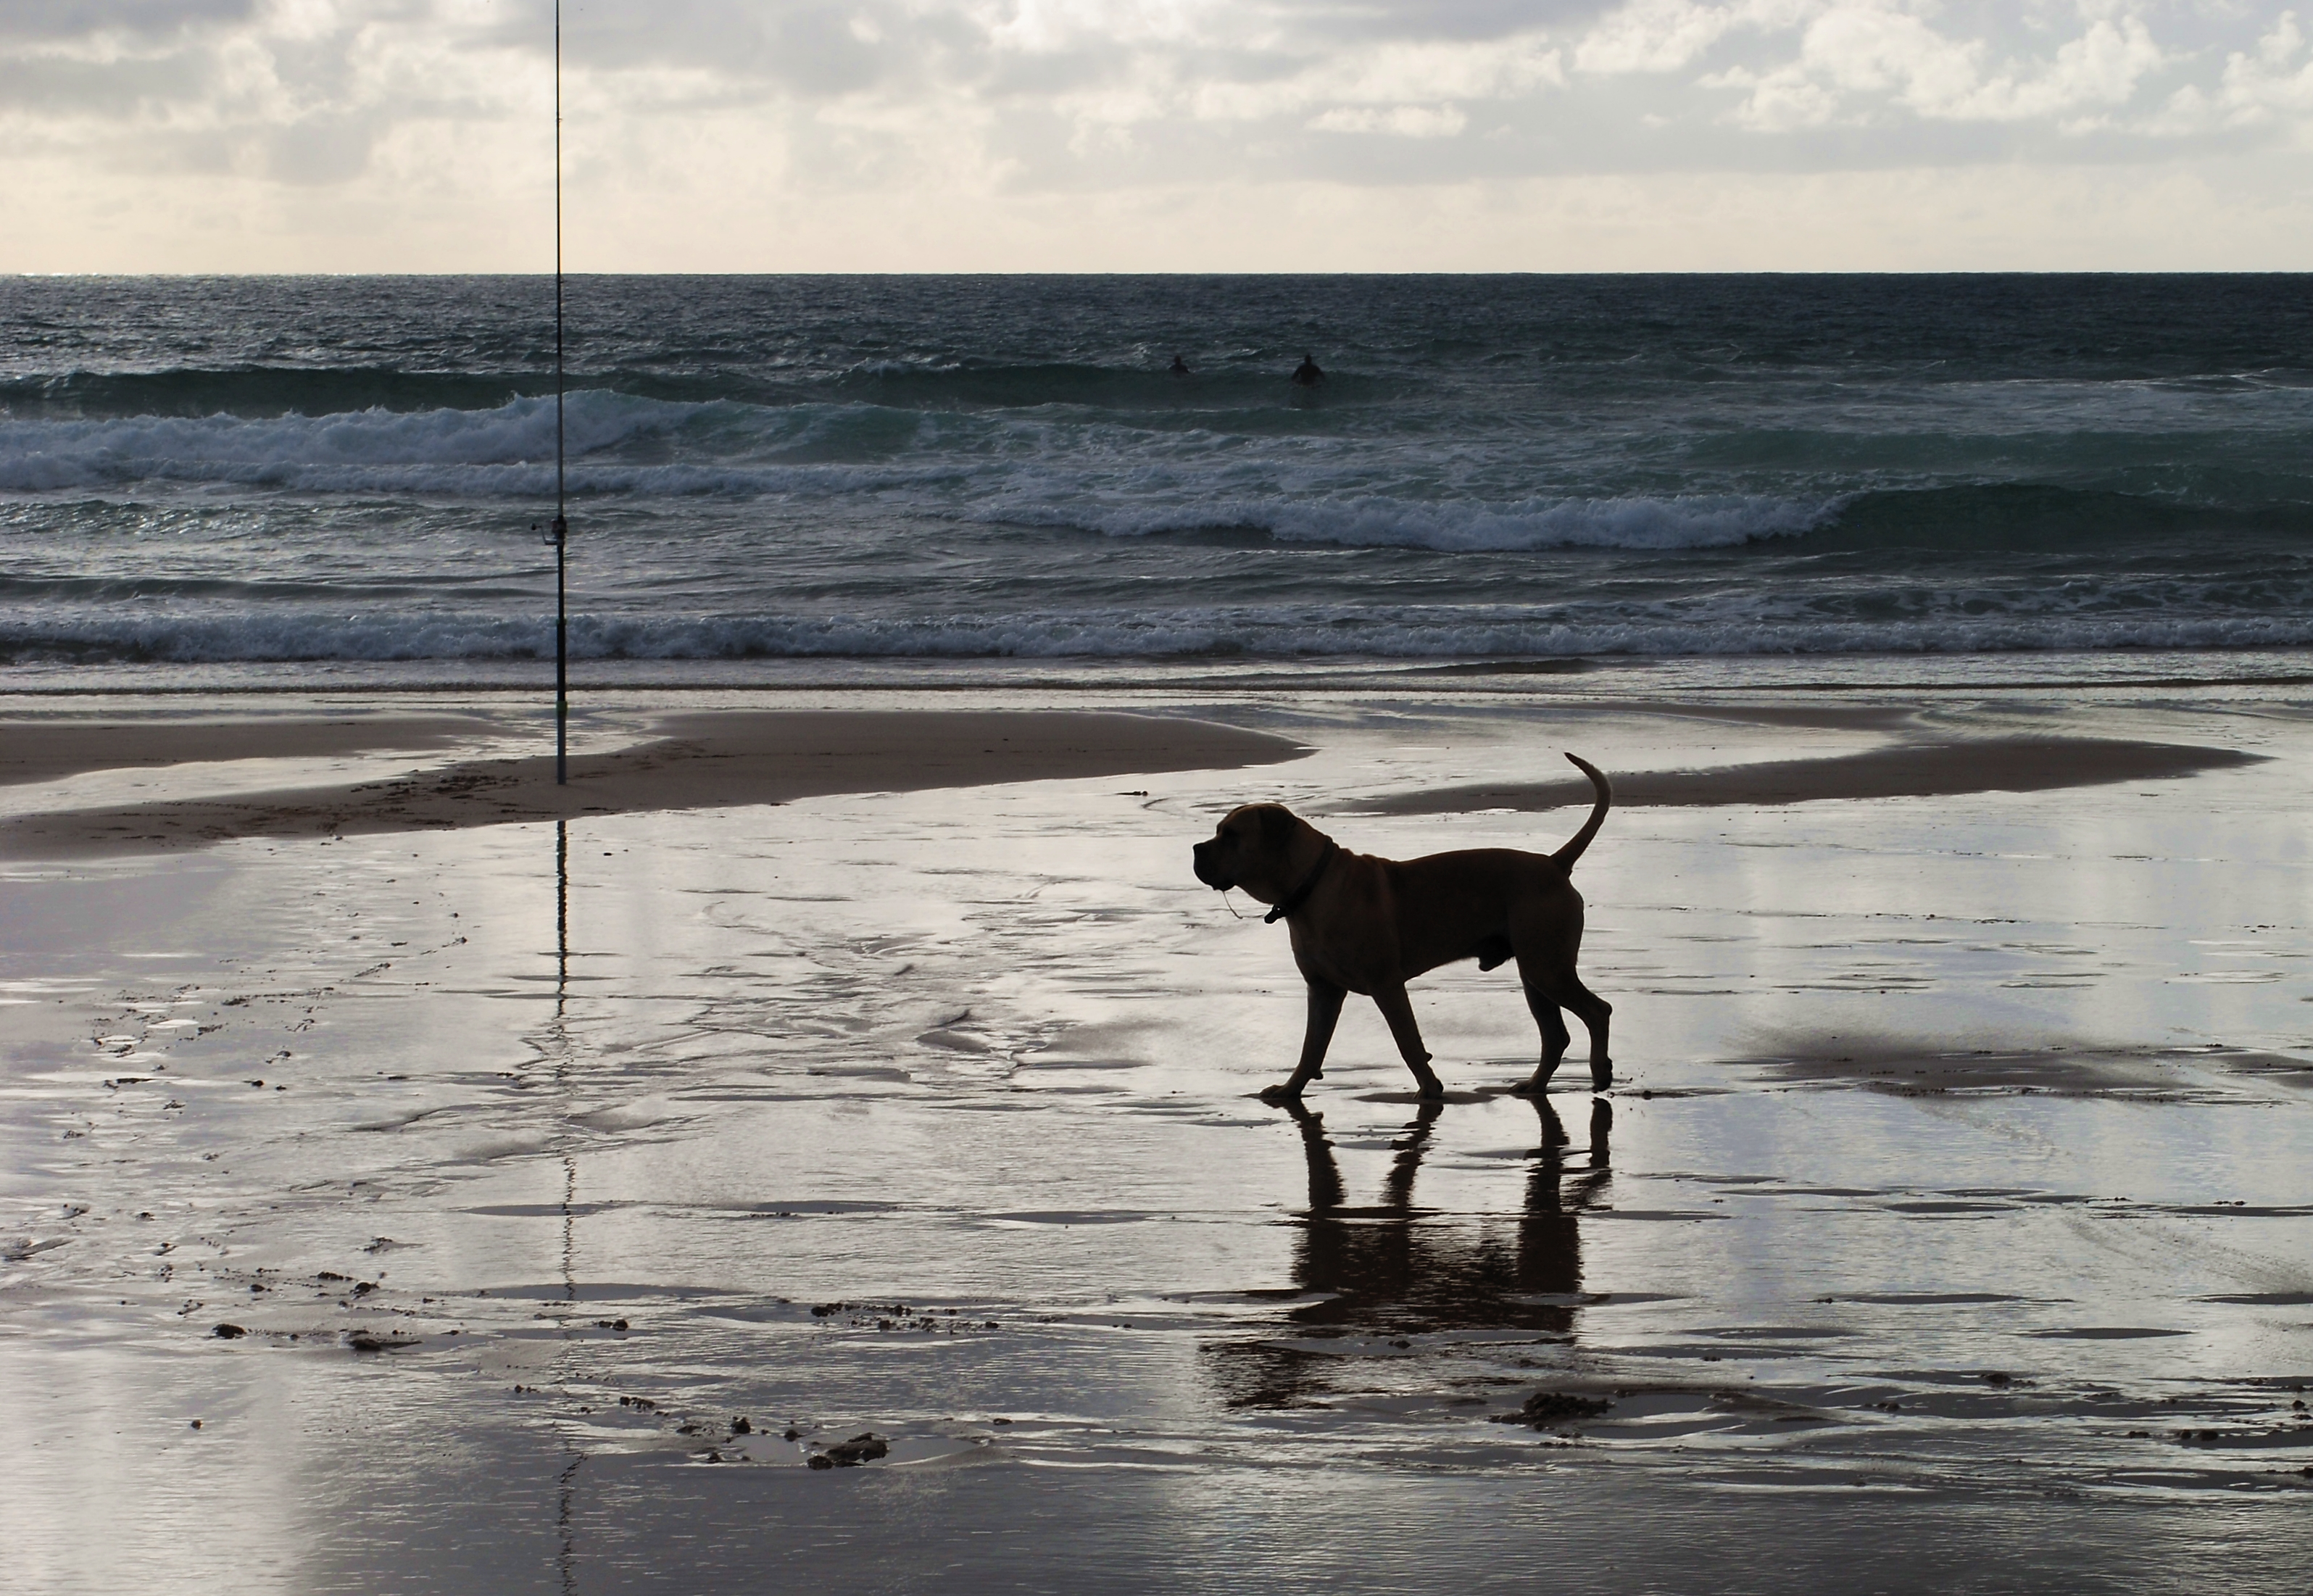 File:Dog looking at the sea.jpg - Wikimedia Commons